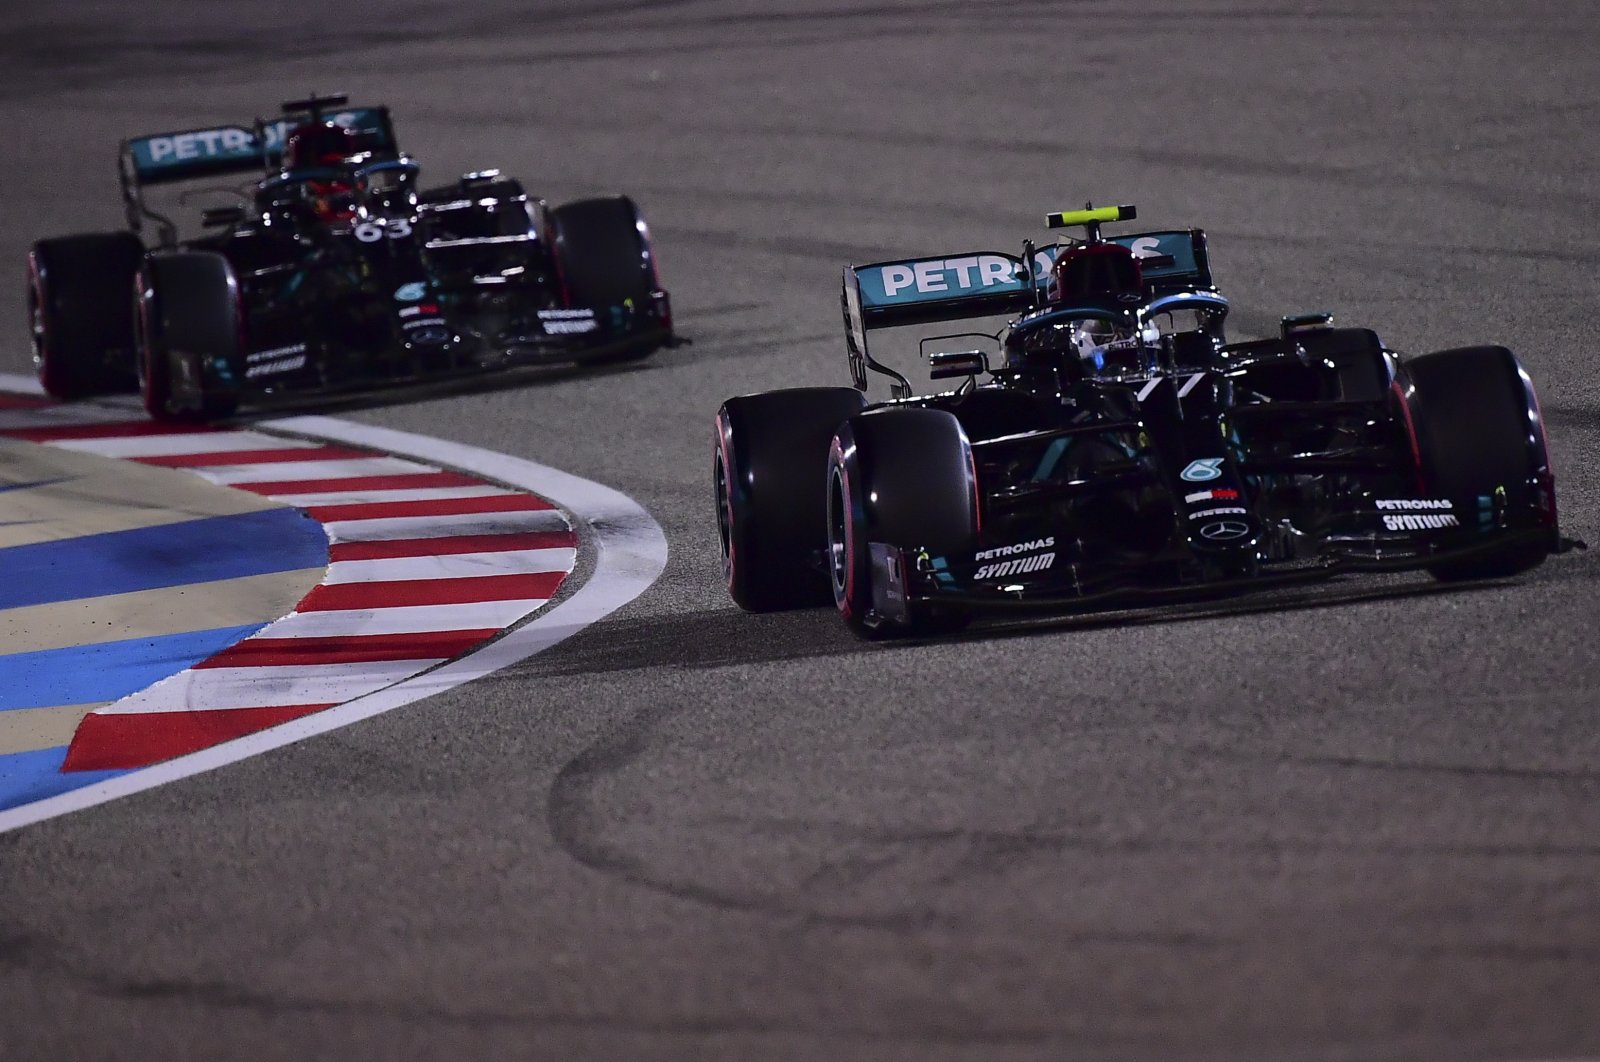 Finnish Formula One driver Valtteri Bottas of Mercedes-AMG Petronas (front) and his British teammate George Russell in action during the qualifying session of the Formula One Sakhir Grand Prix at Bahrain International Circuit near Manama, Bahrain, Dec. 05, 2020 (EPA Photo)